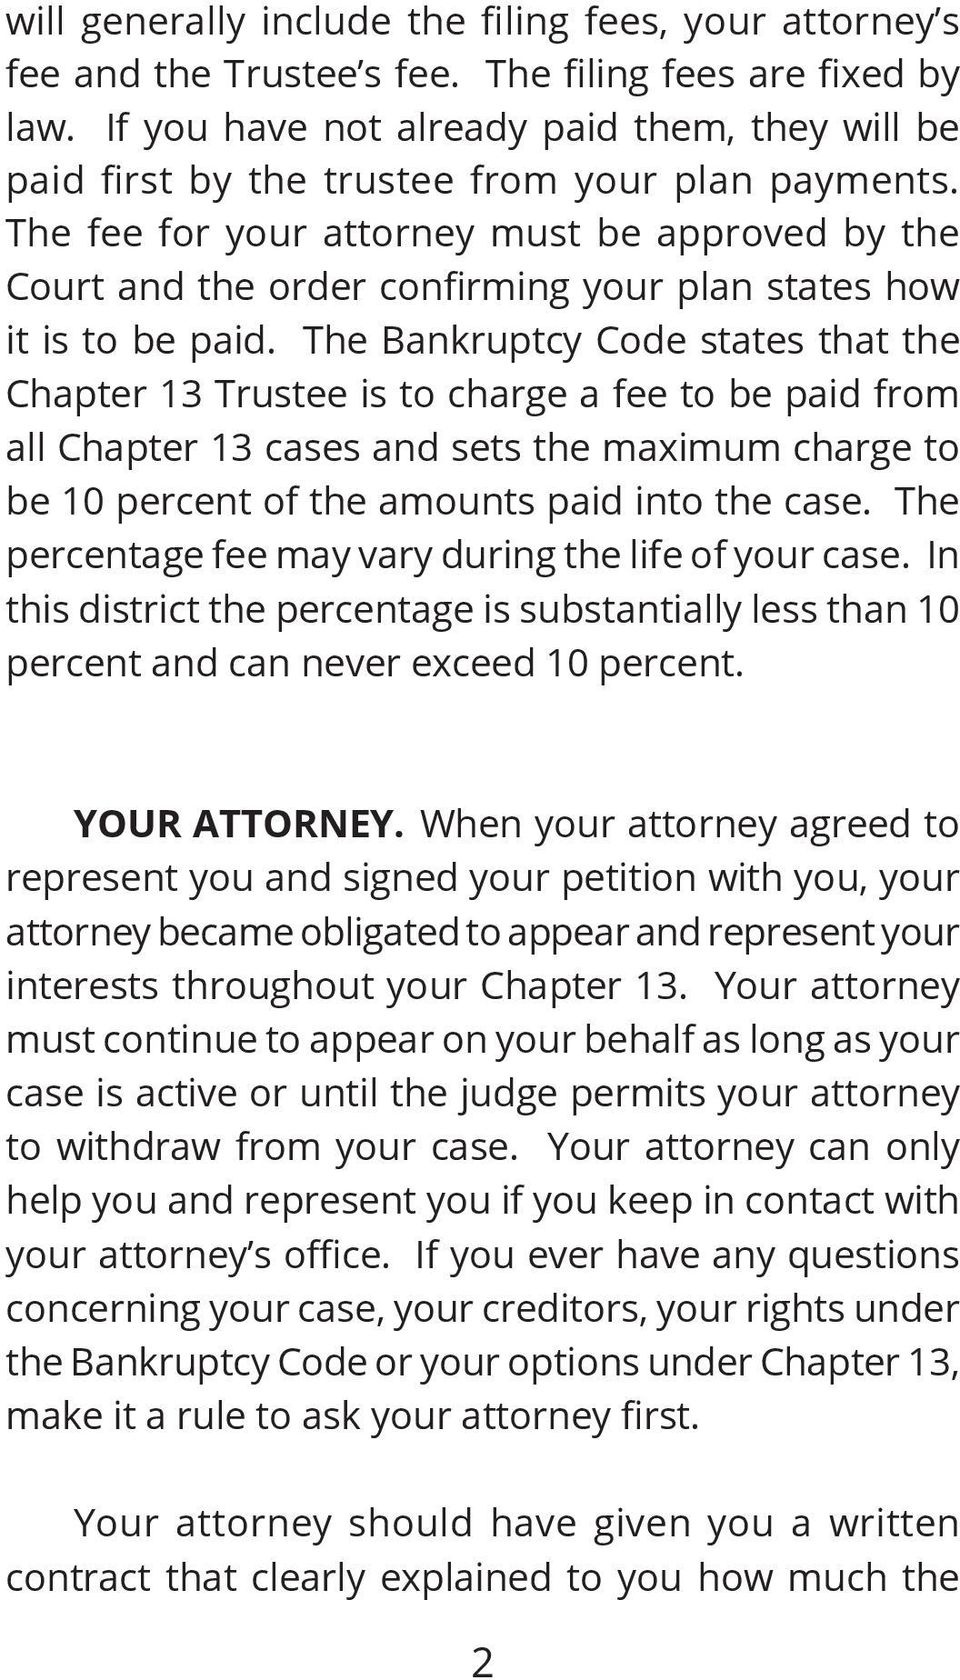 The fee for your attorney must be approved by the Court and the order confirming your plan states how it is to be paid.